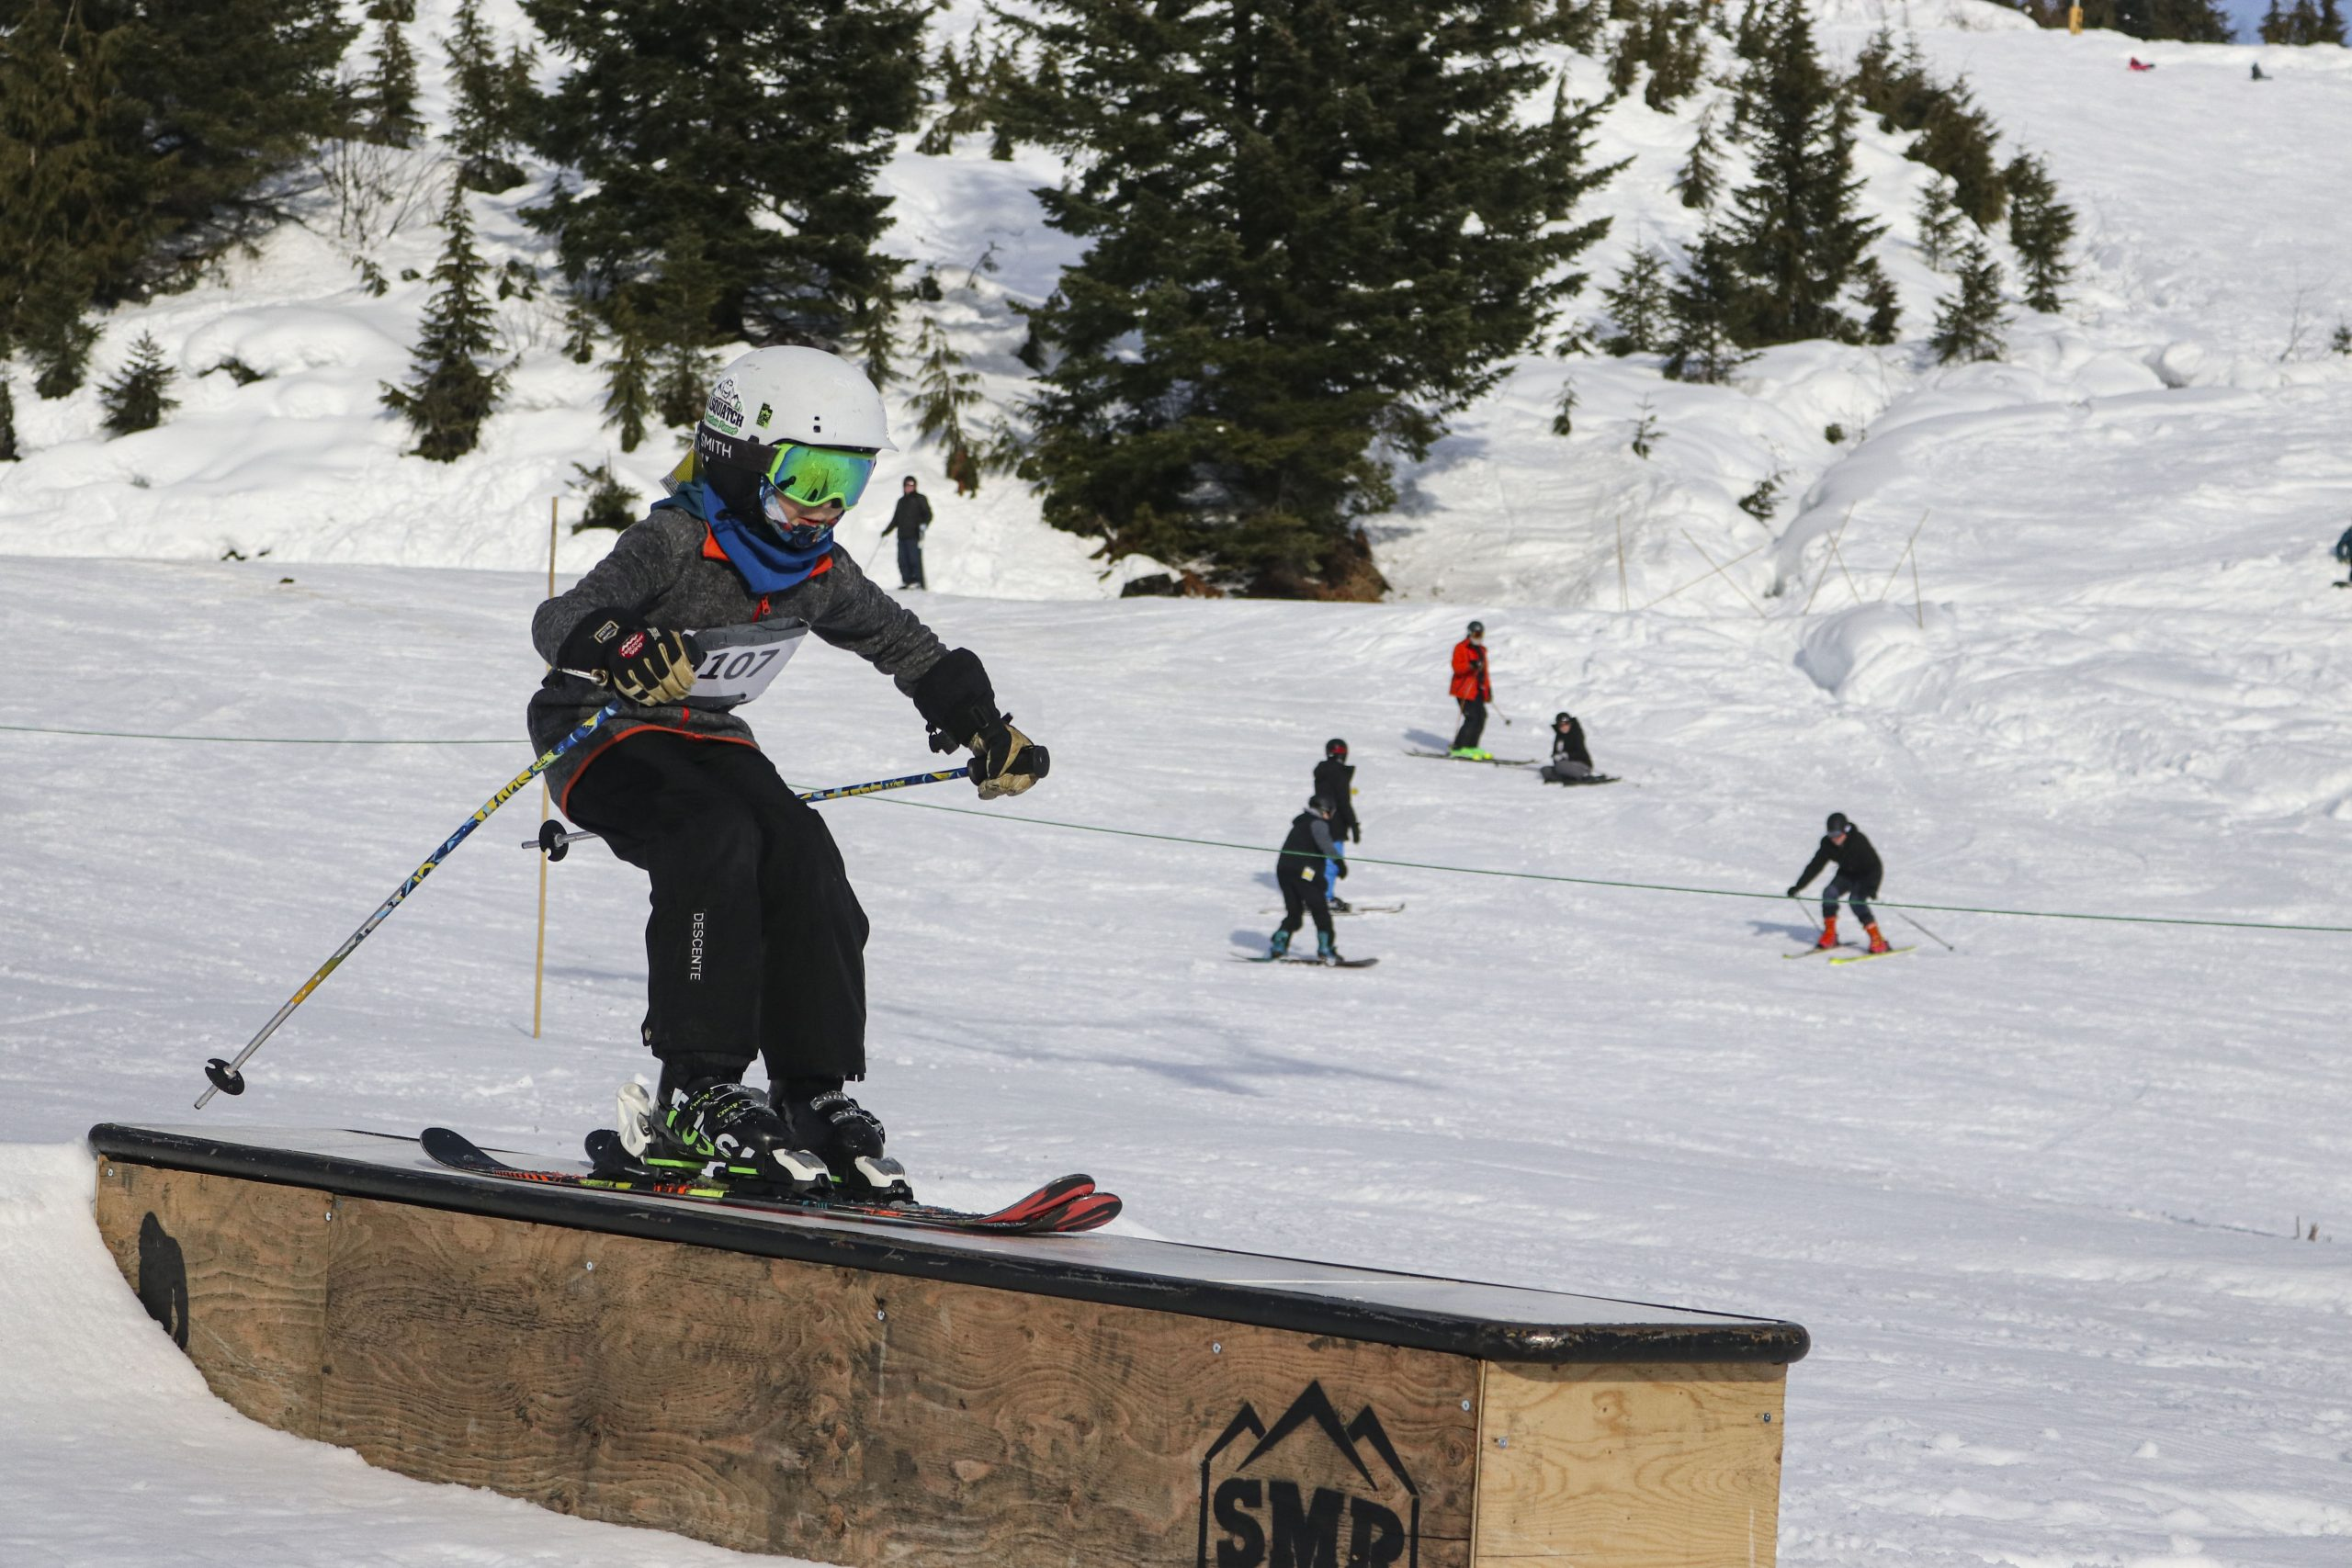 Young skier hitting a box rail in one of the terrain parks at Sasquatch Mountain